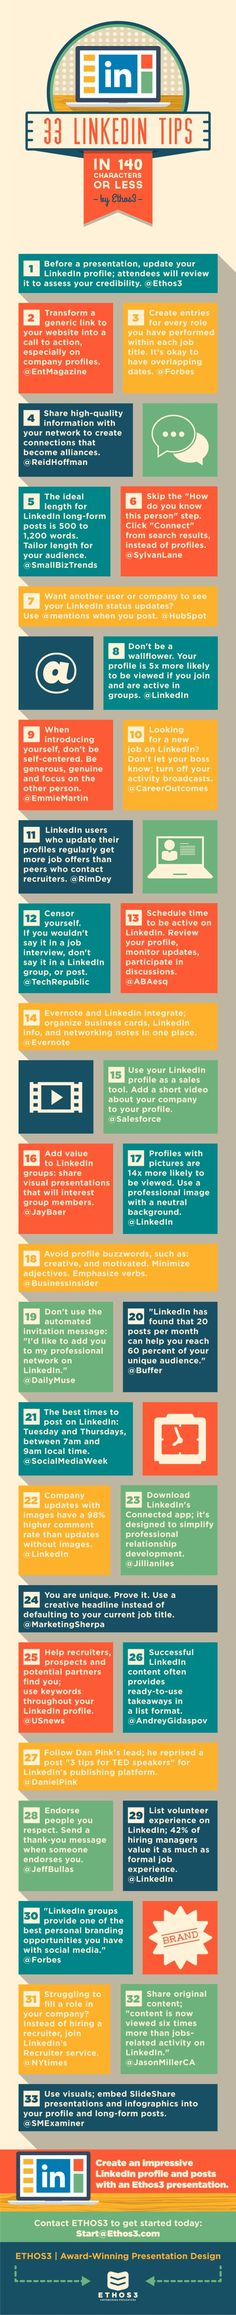 33 LinkedIn Tips In 140 Characters Or Less - #infographic #socialmedia